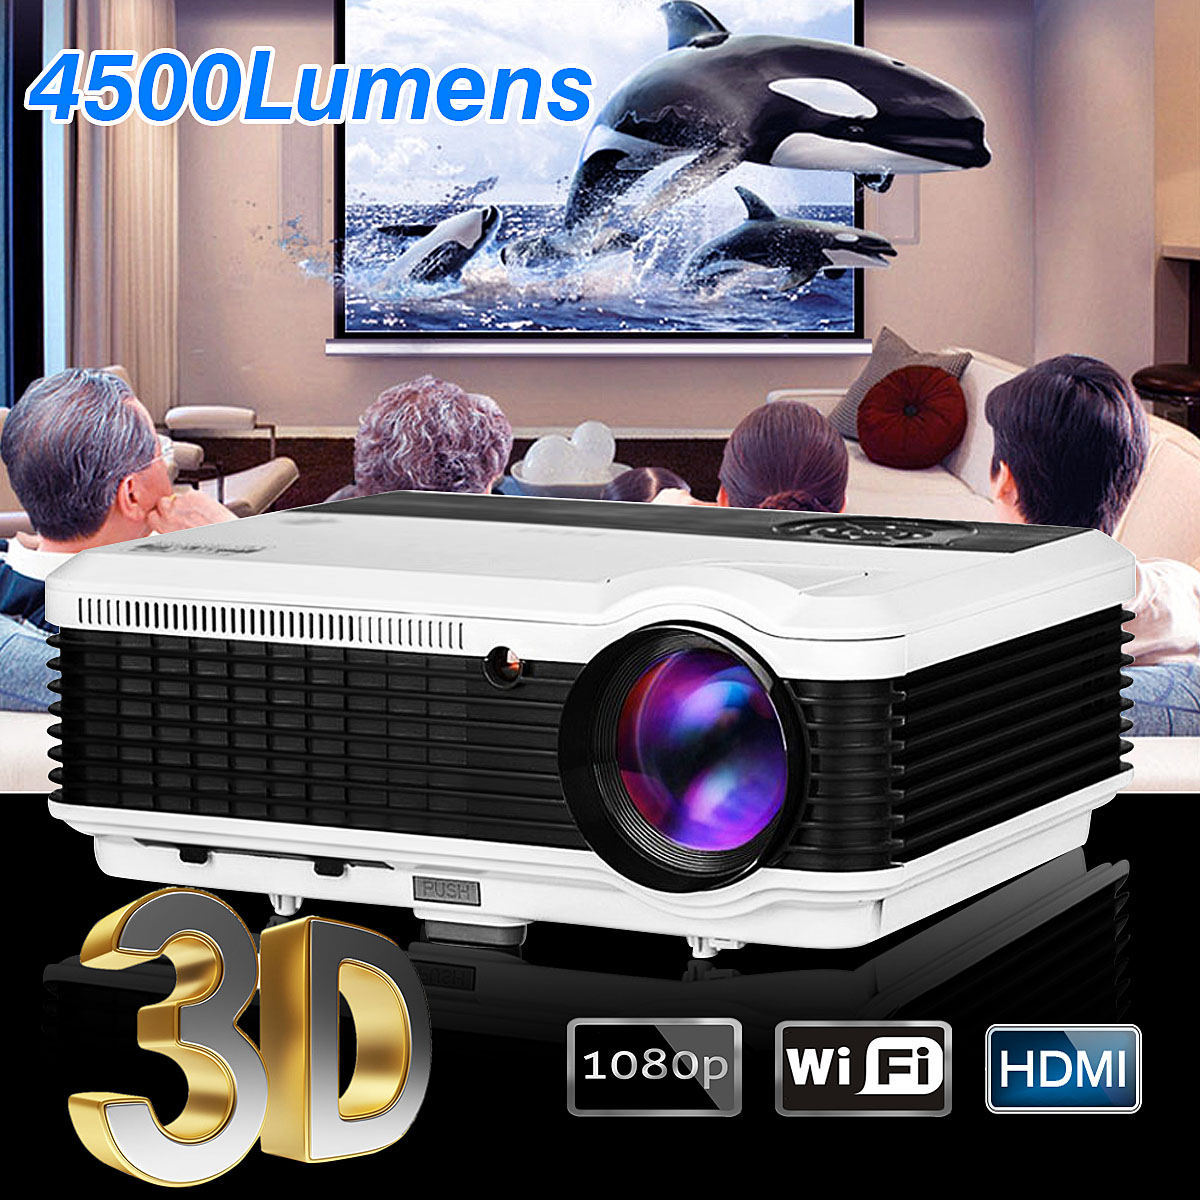 4500 Lumens LED 1080P Full HD Portable Android WIFI Projector 3D Multimedia CPU with Stereo Speaker for Theater Home Business электрический станок для заточки ножей chef'schoice cc220w